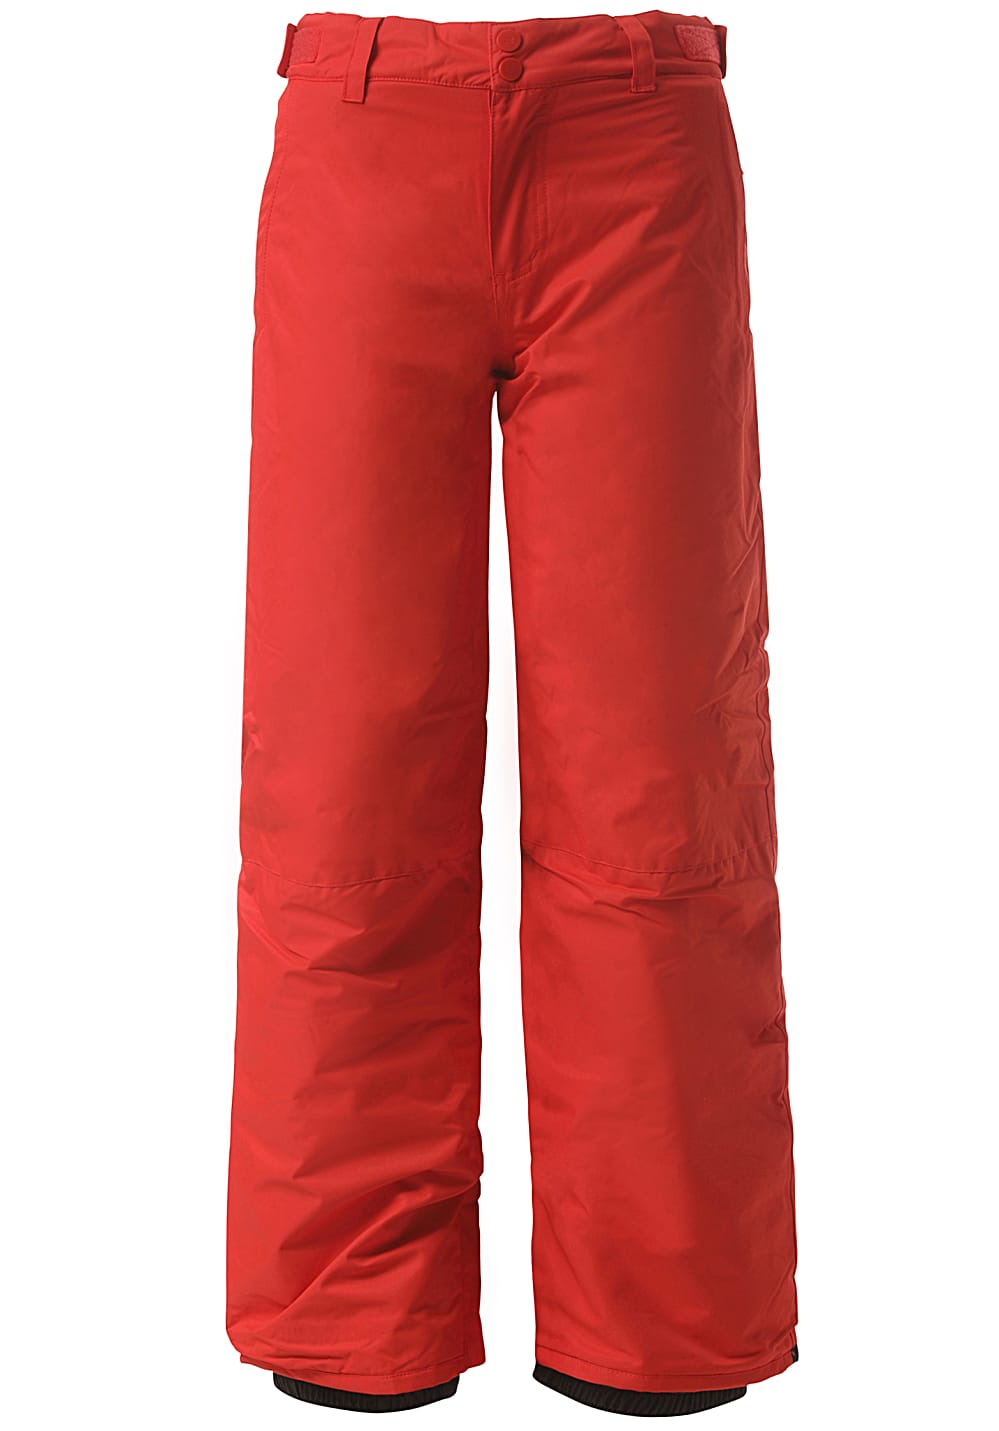 Boysregenwinter - BILLABONG Grom Boys Snowboardhose für Jungs Rot - Onlineshop Planet Sports